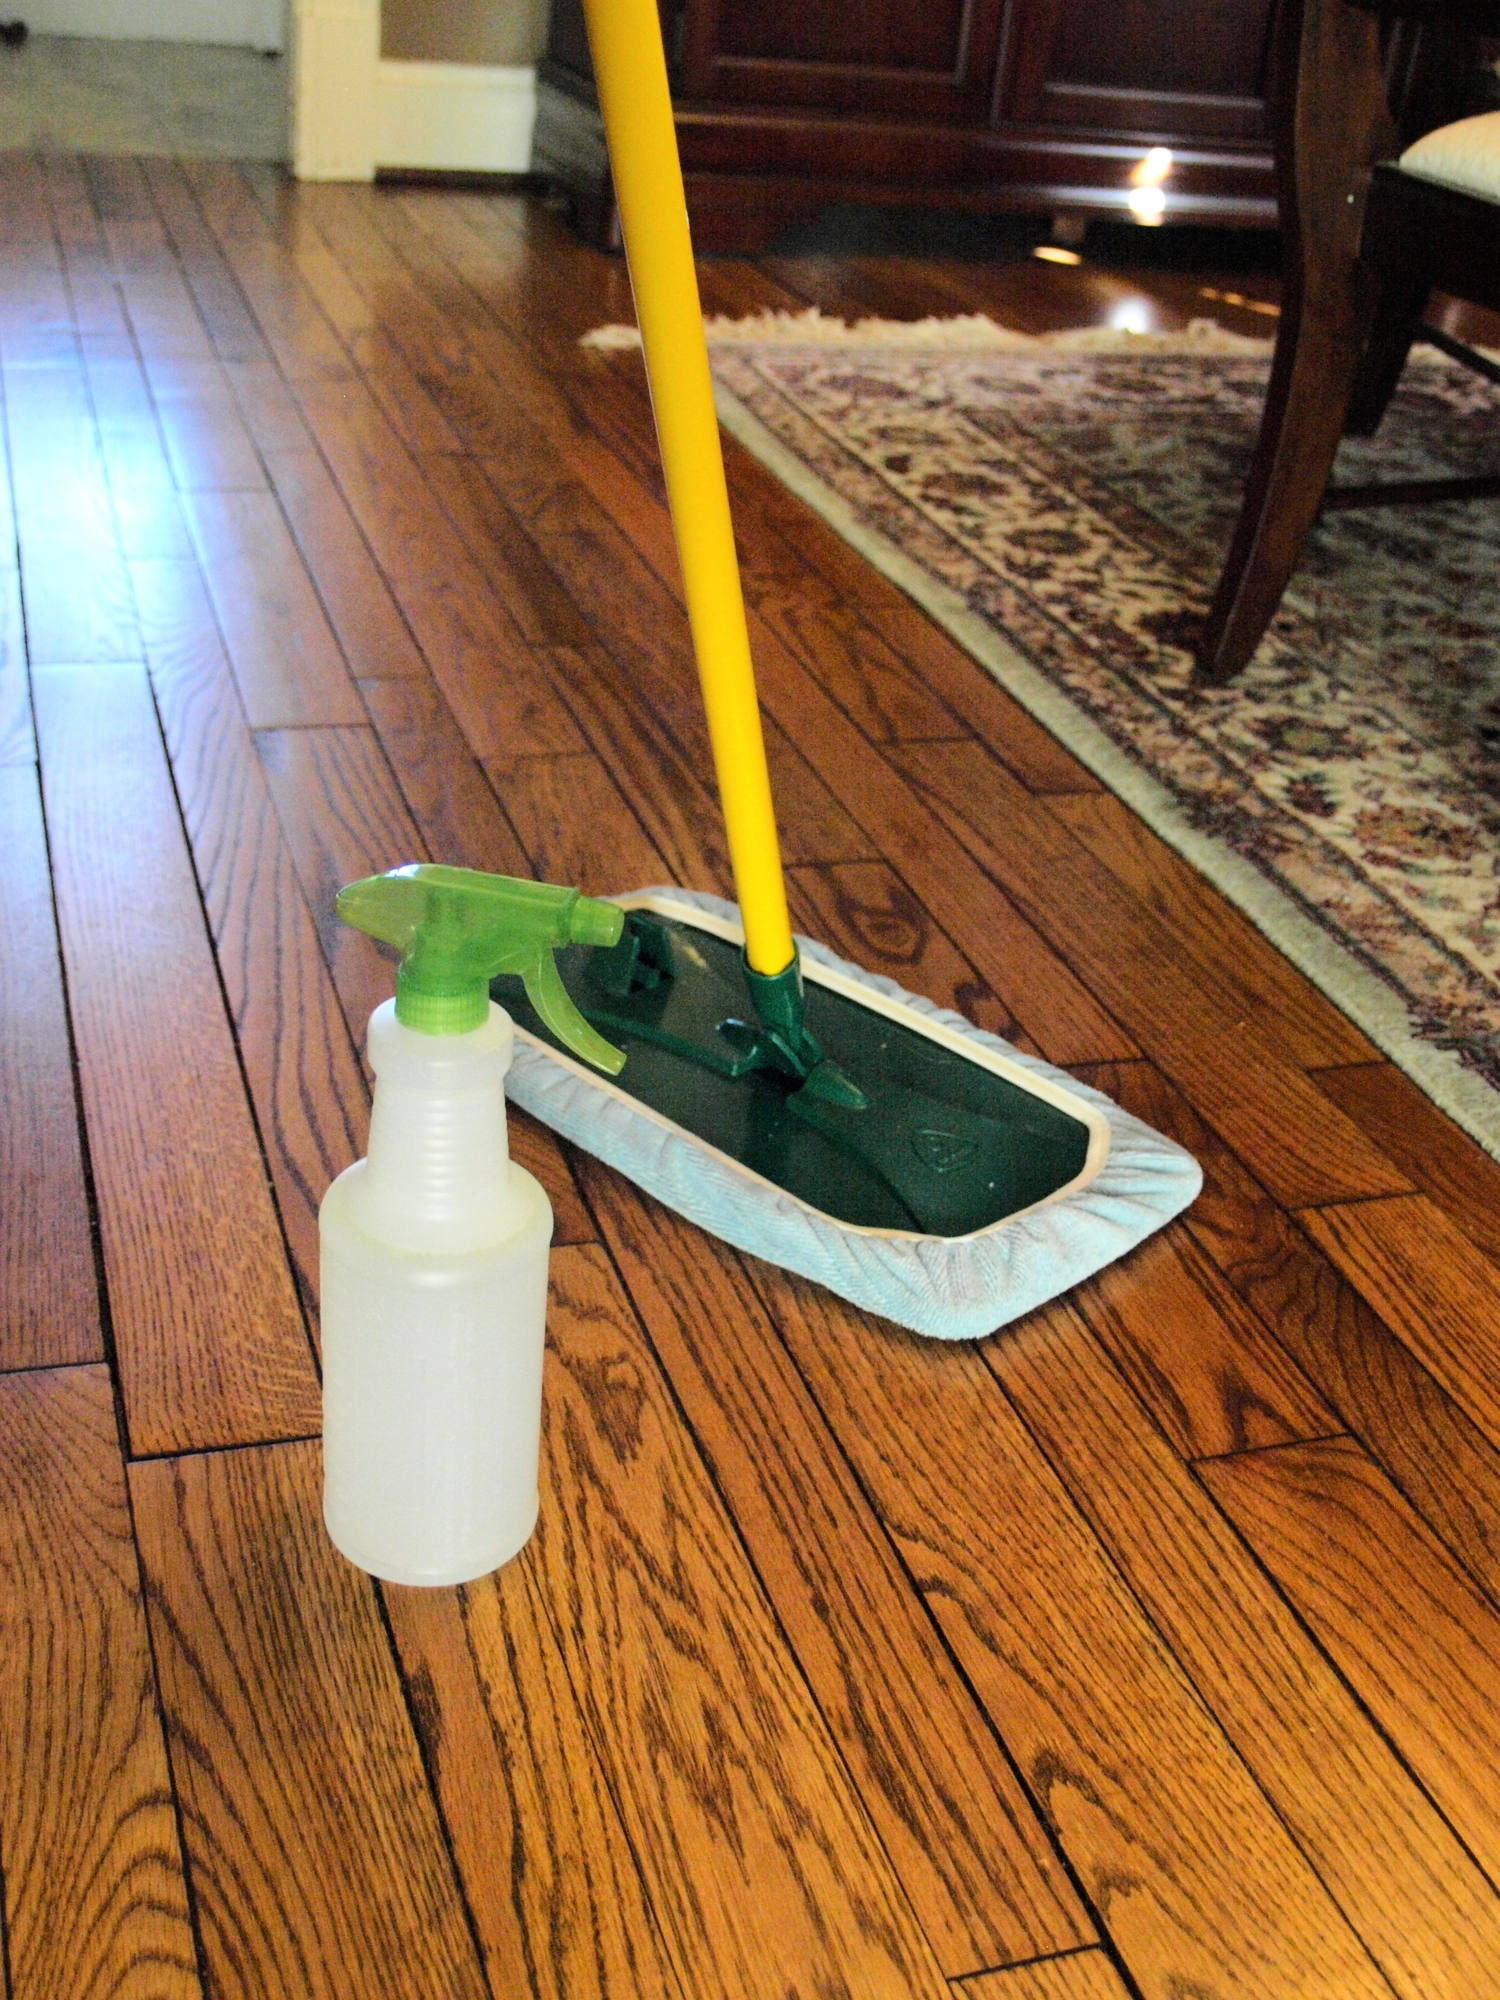 No chemical residue, no damage to our hardwood floors...